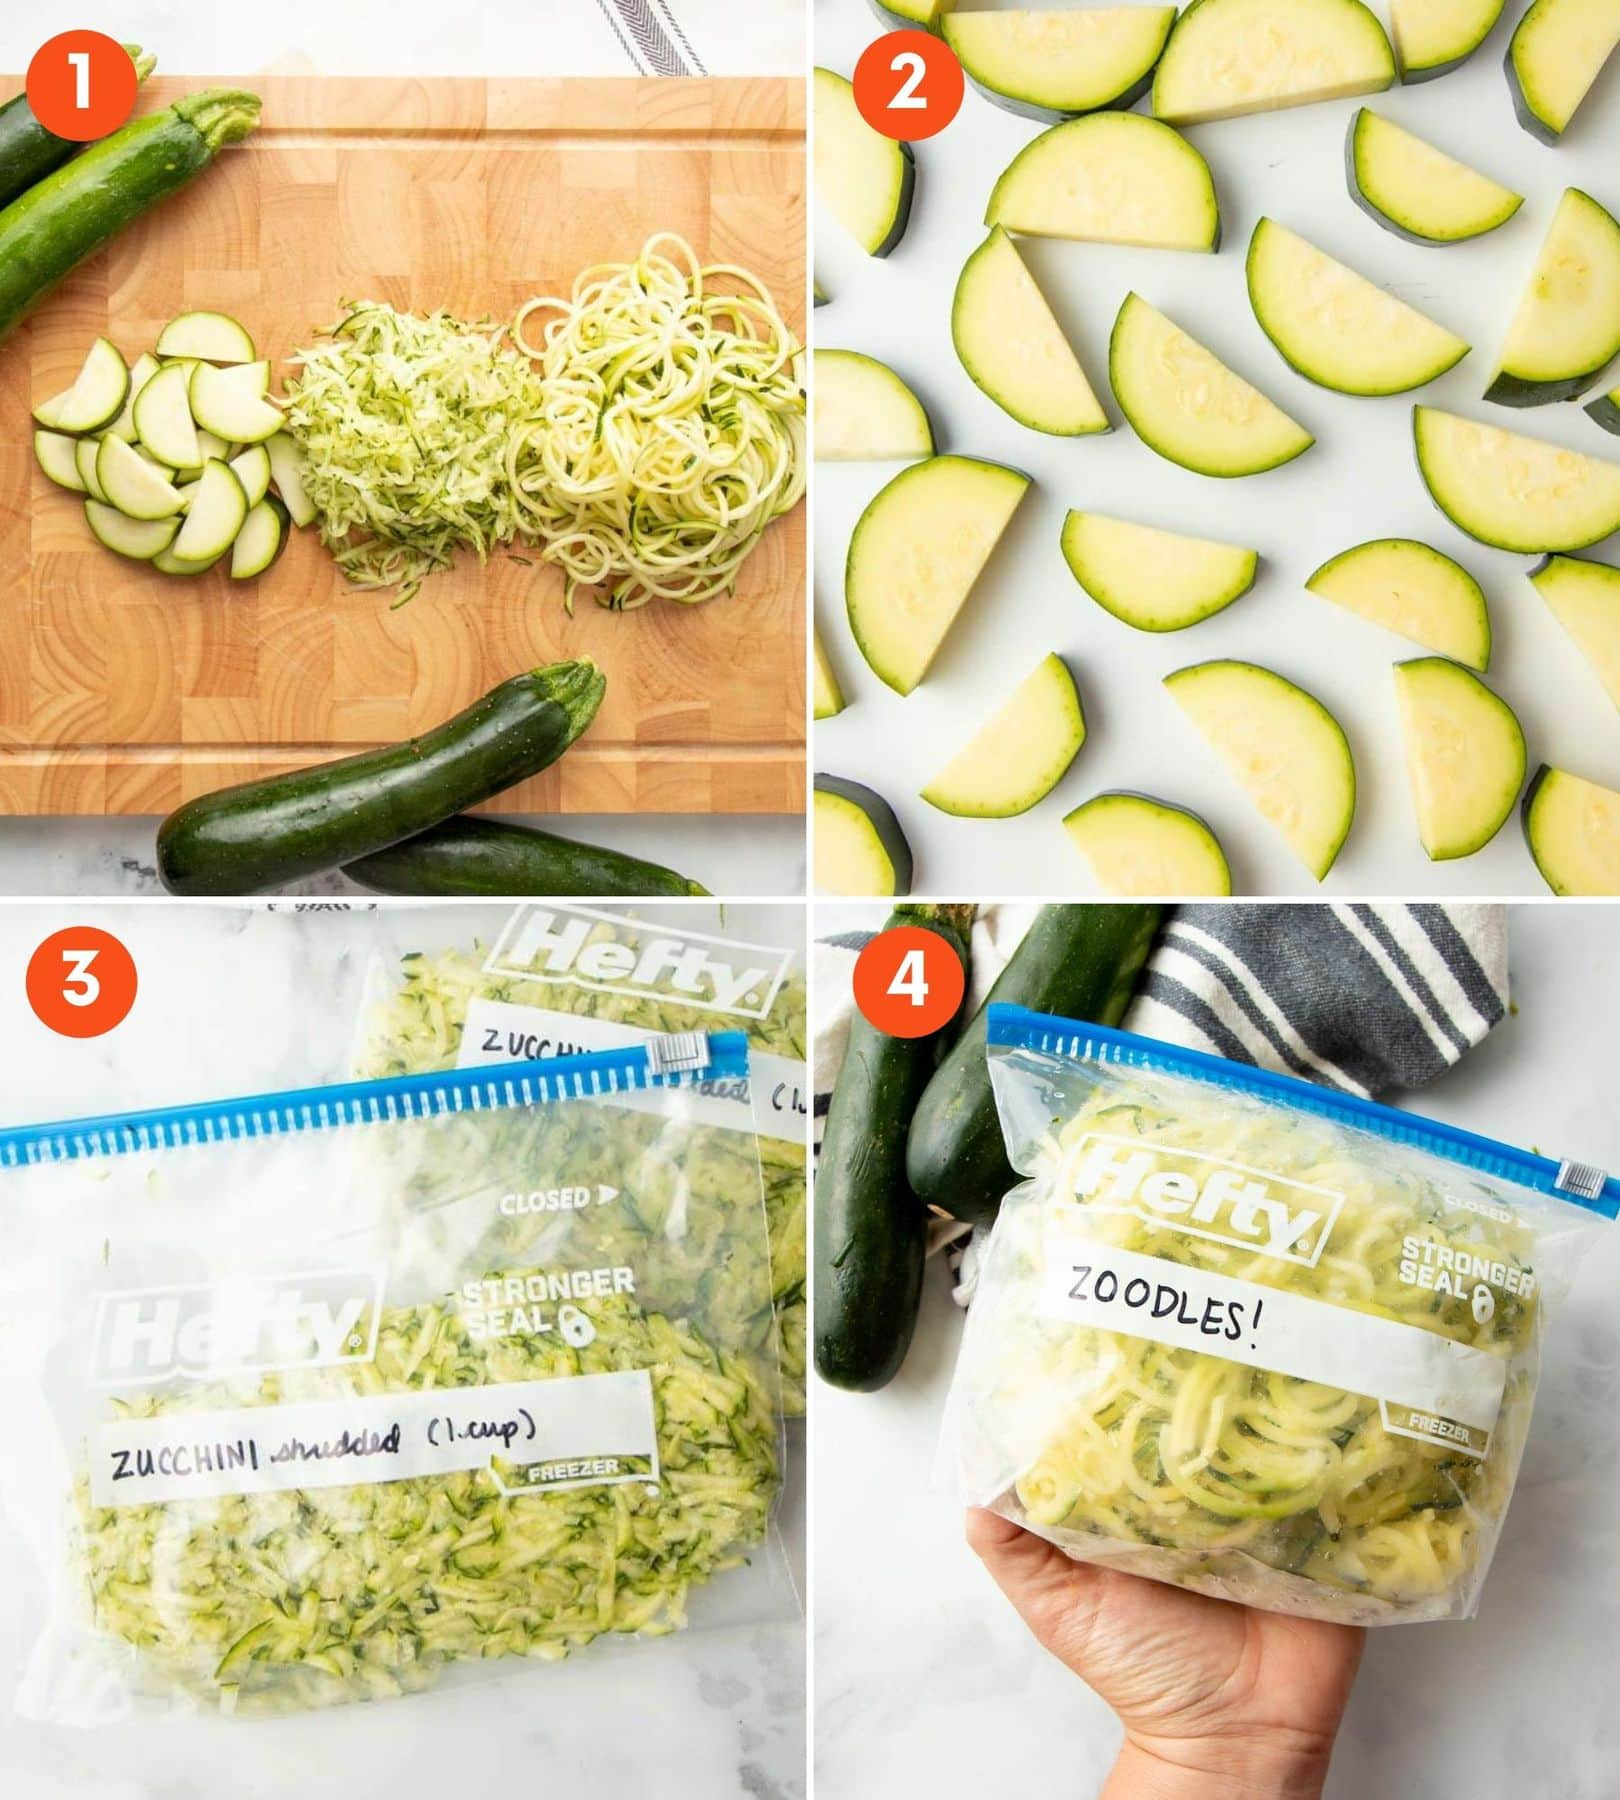 A collage of images showing three different ways to freeze zucchini.